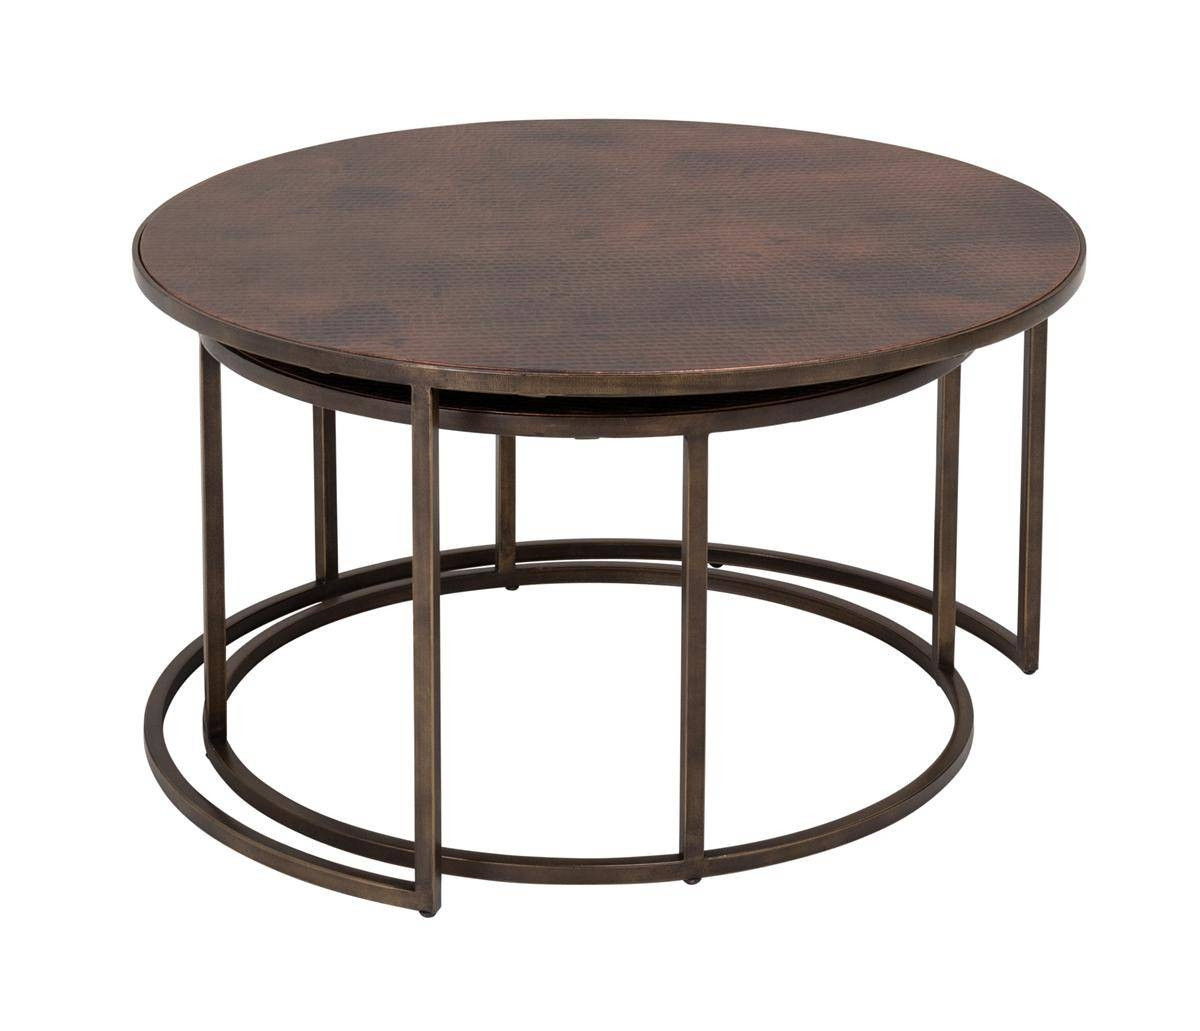 Copper-Top Nesting Coffee Tables | Weir's Furniture intended for Coffee Tables With Nesting Stools (Image 16 of 30)